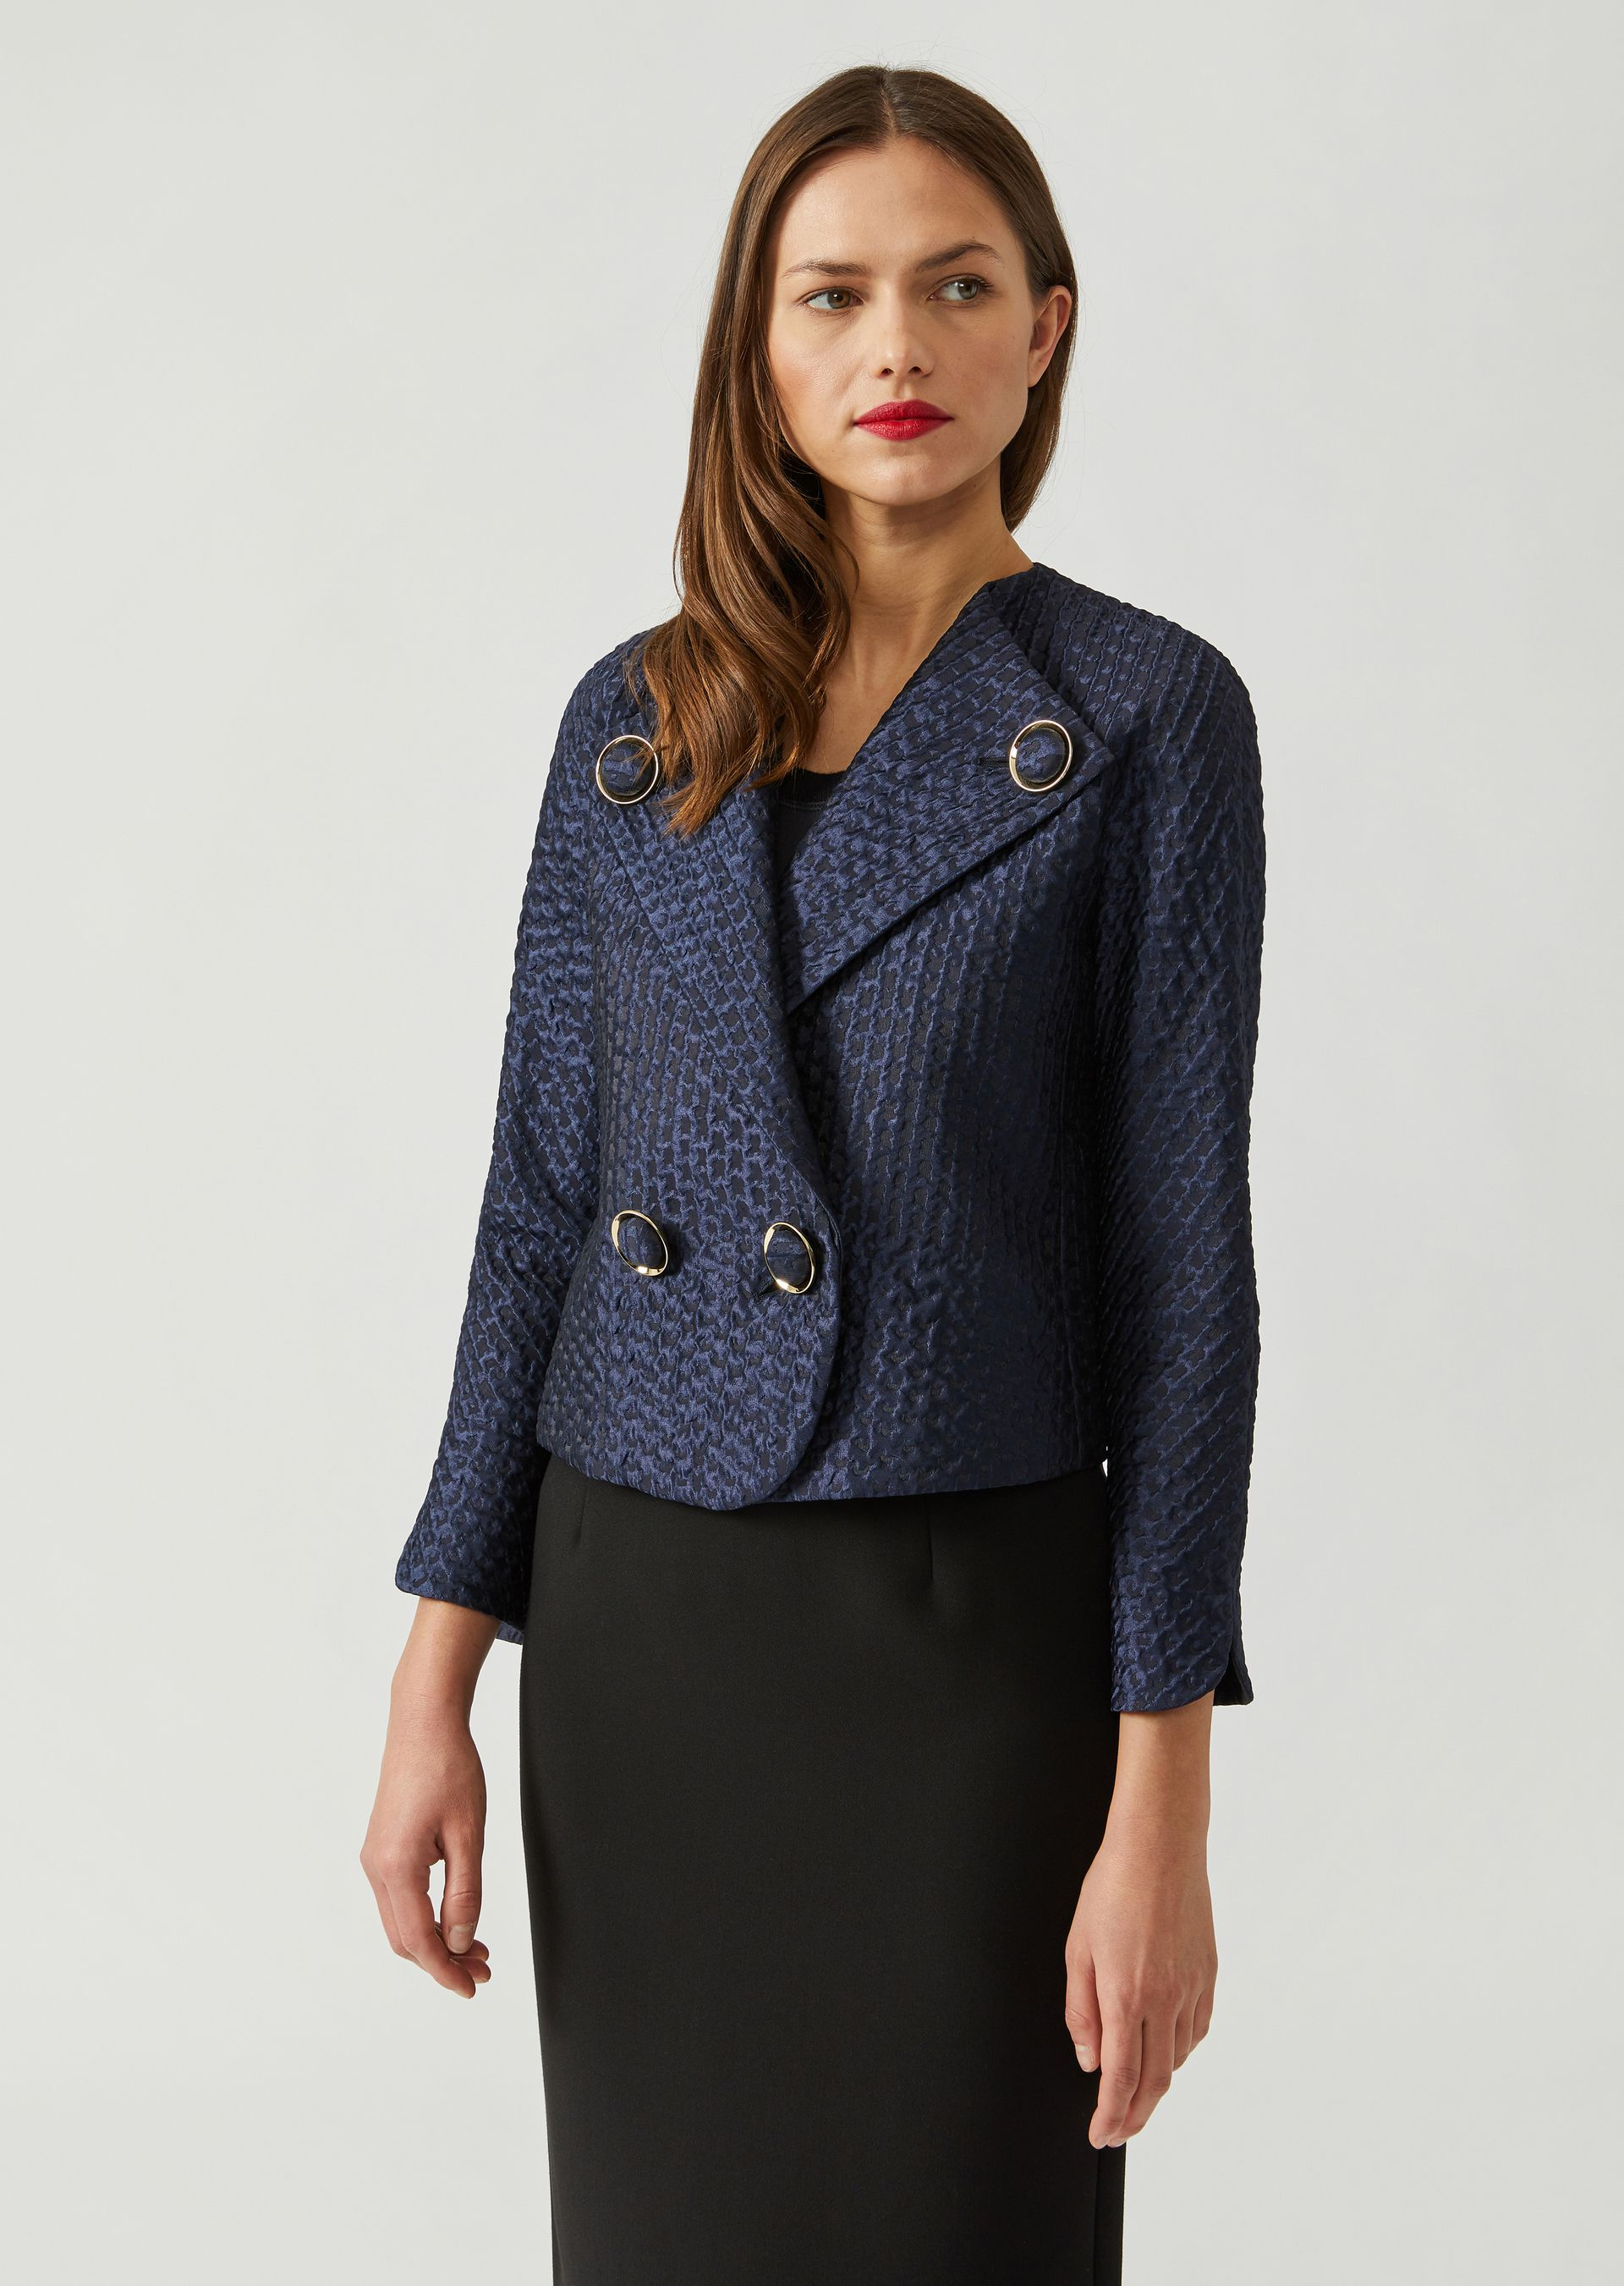 Casual Jackets - Item 41843744, Pattern from ARMANI.COM